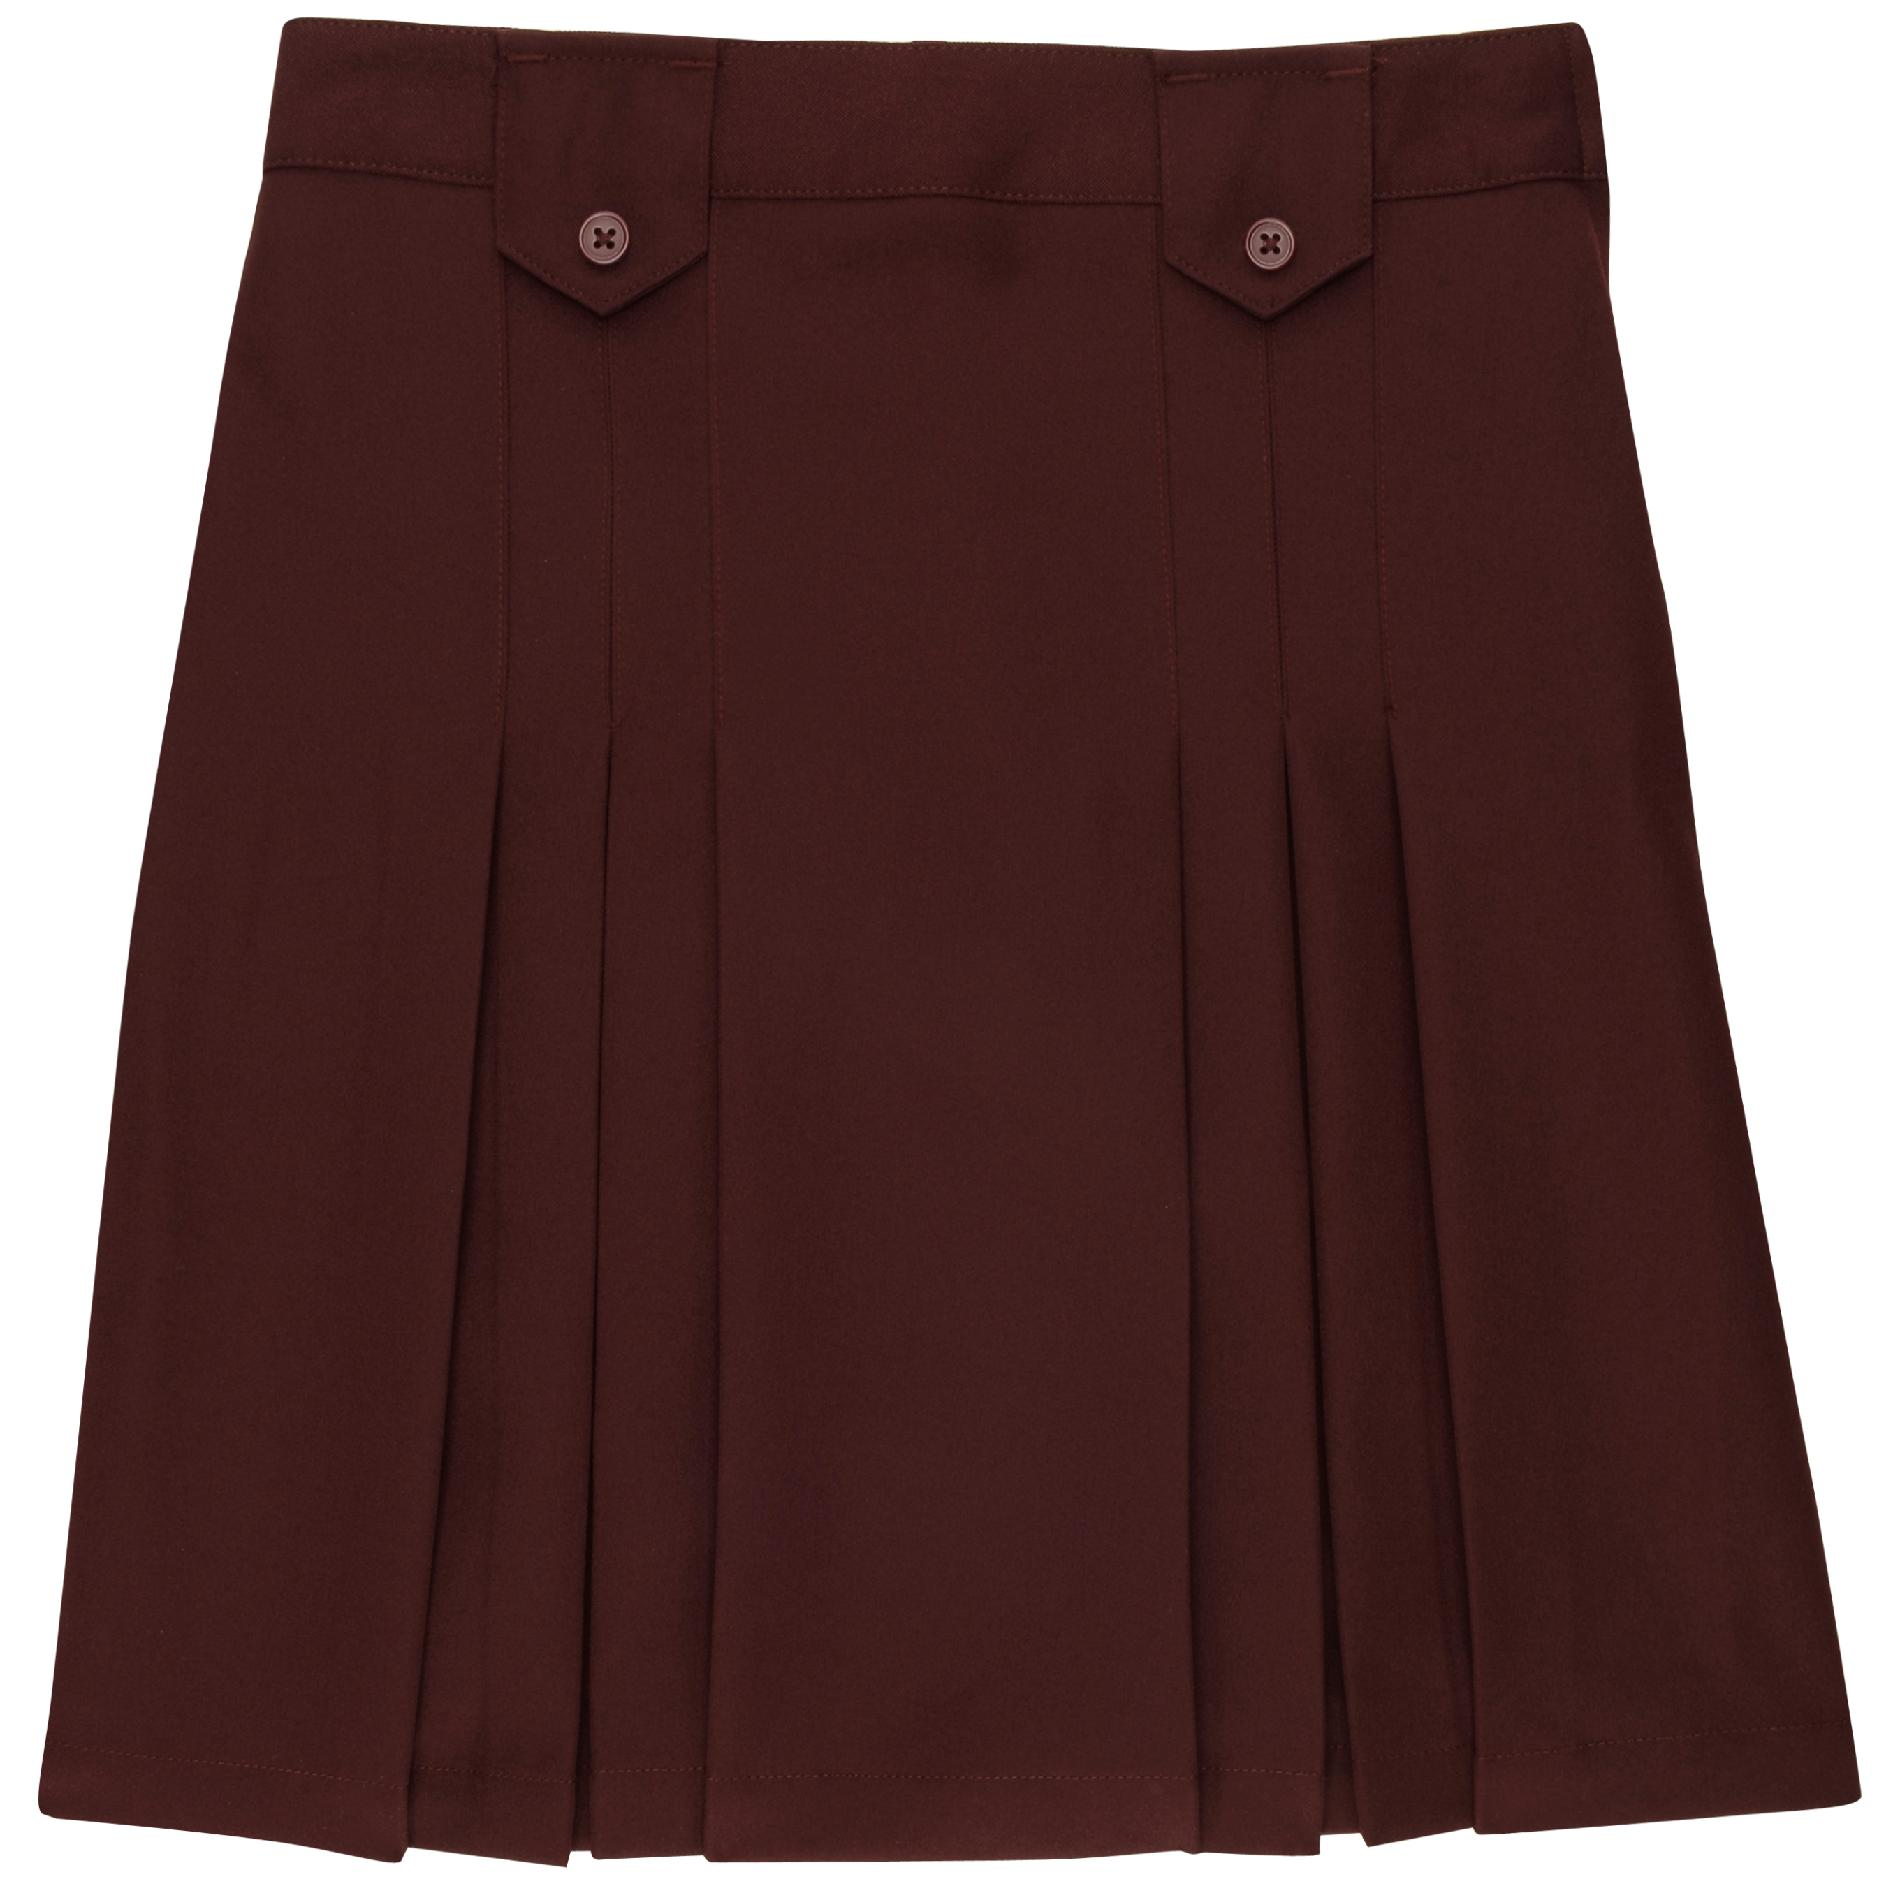 School Skirts Kmart At School By French Toast Front Pleated Skirt With Tabs